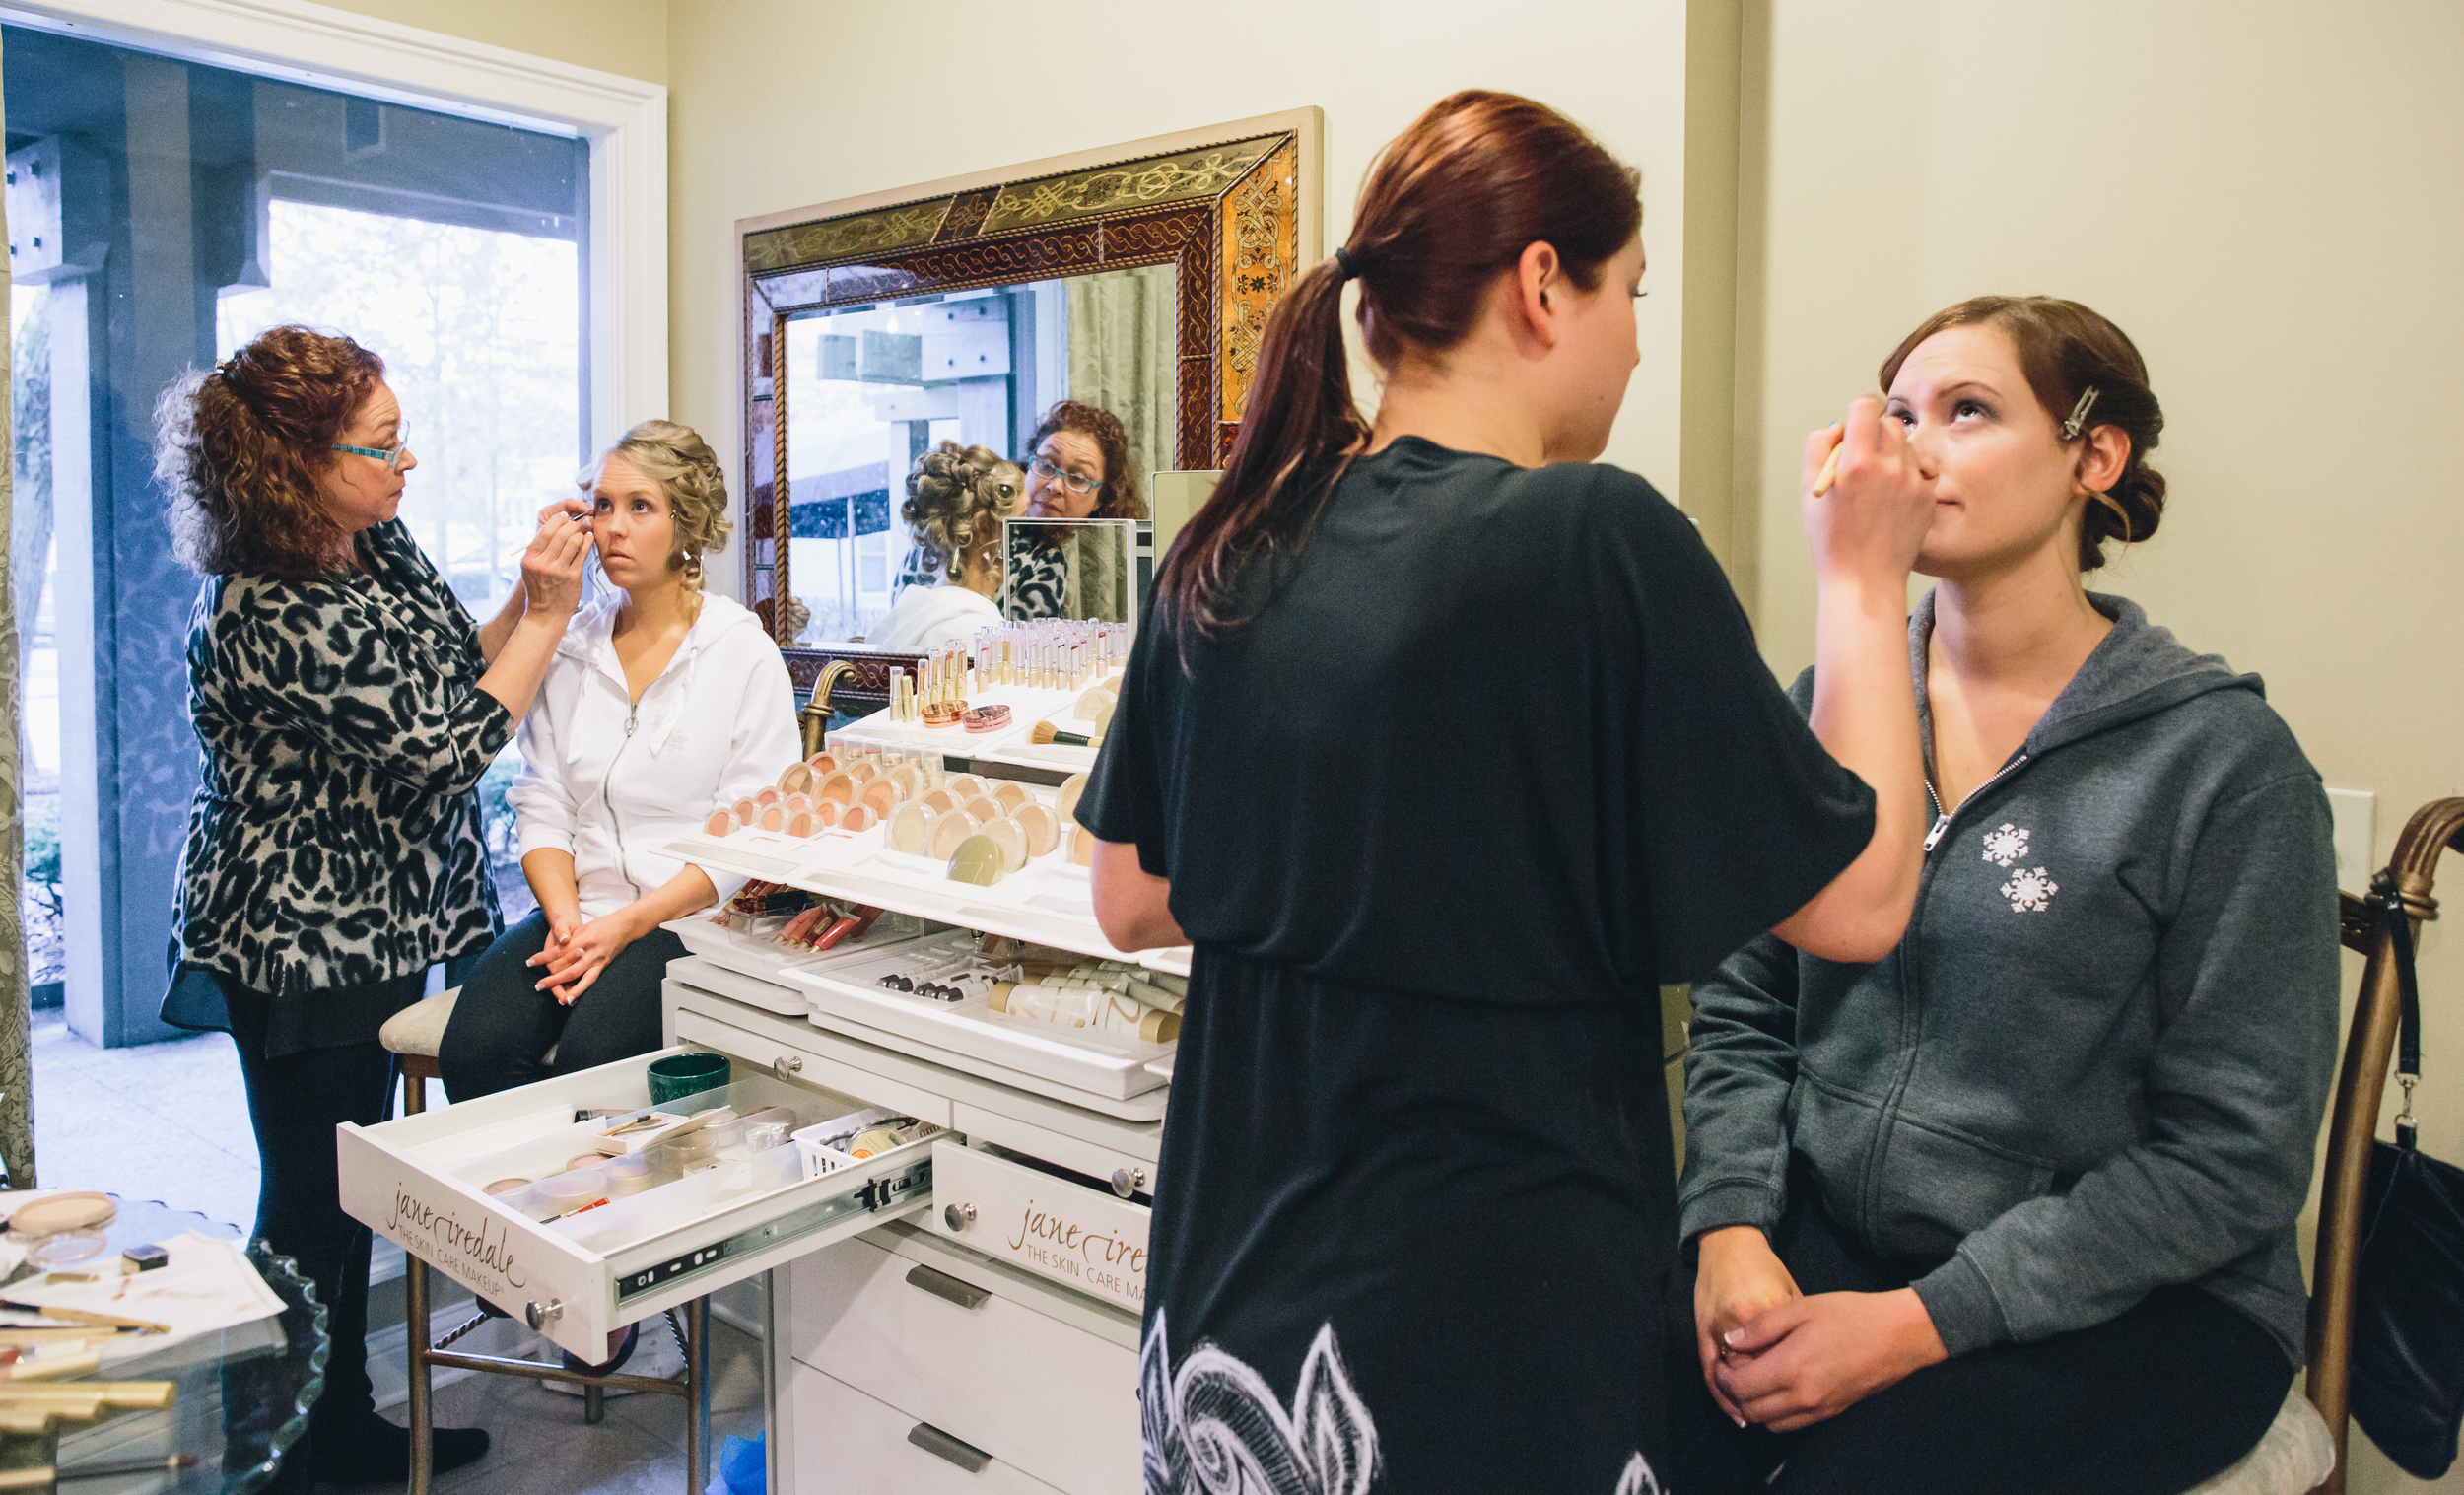 The bride and her Maid of Honor (another Katie) getting their makeup done together.